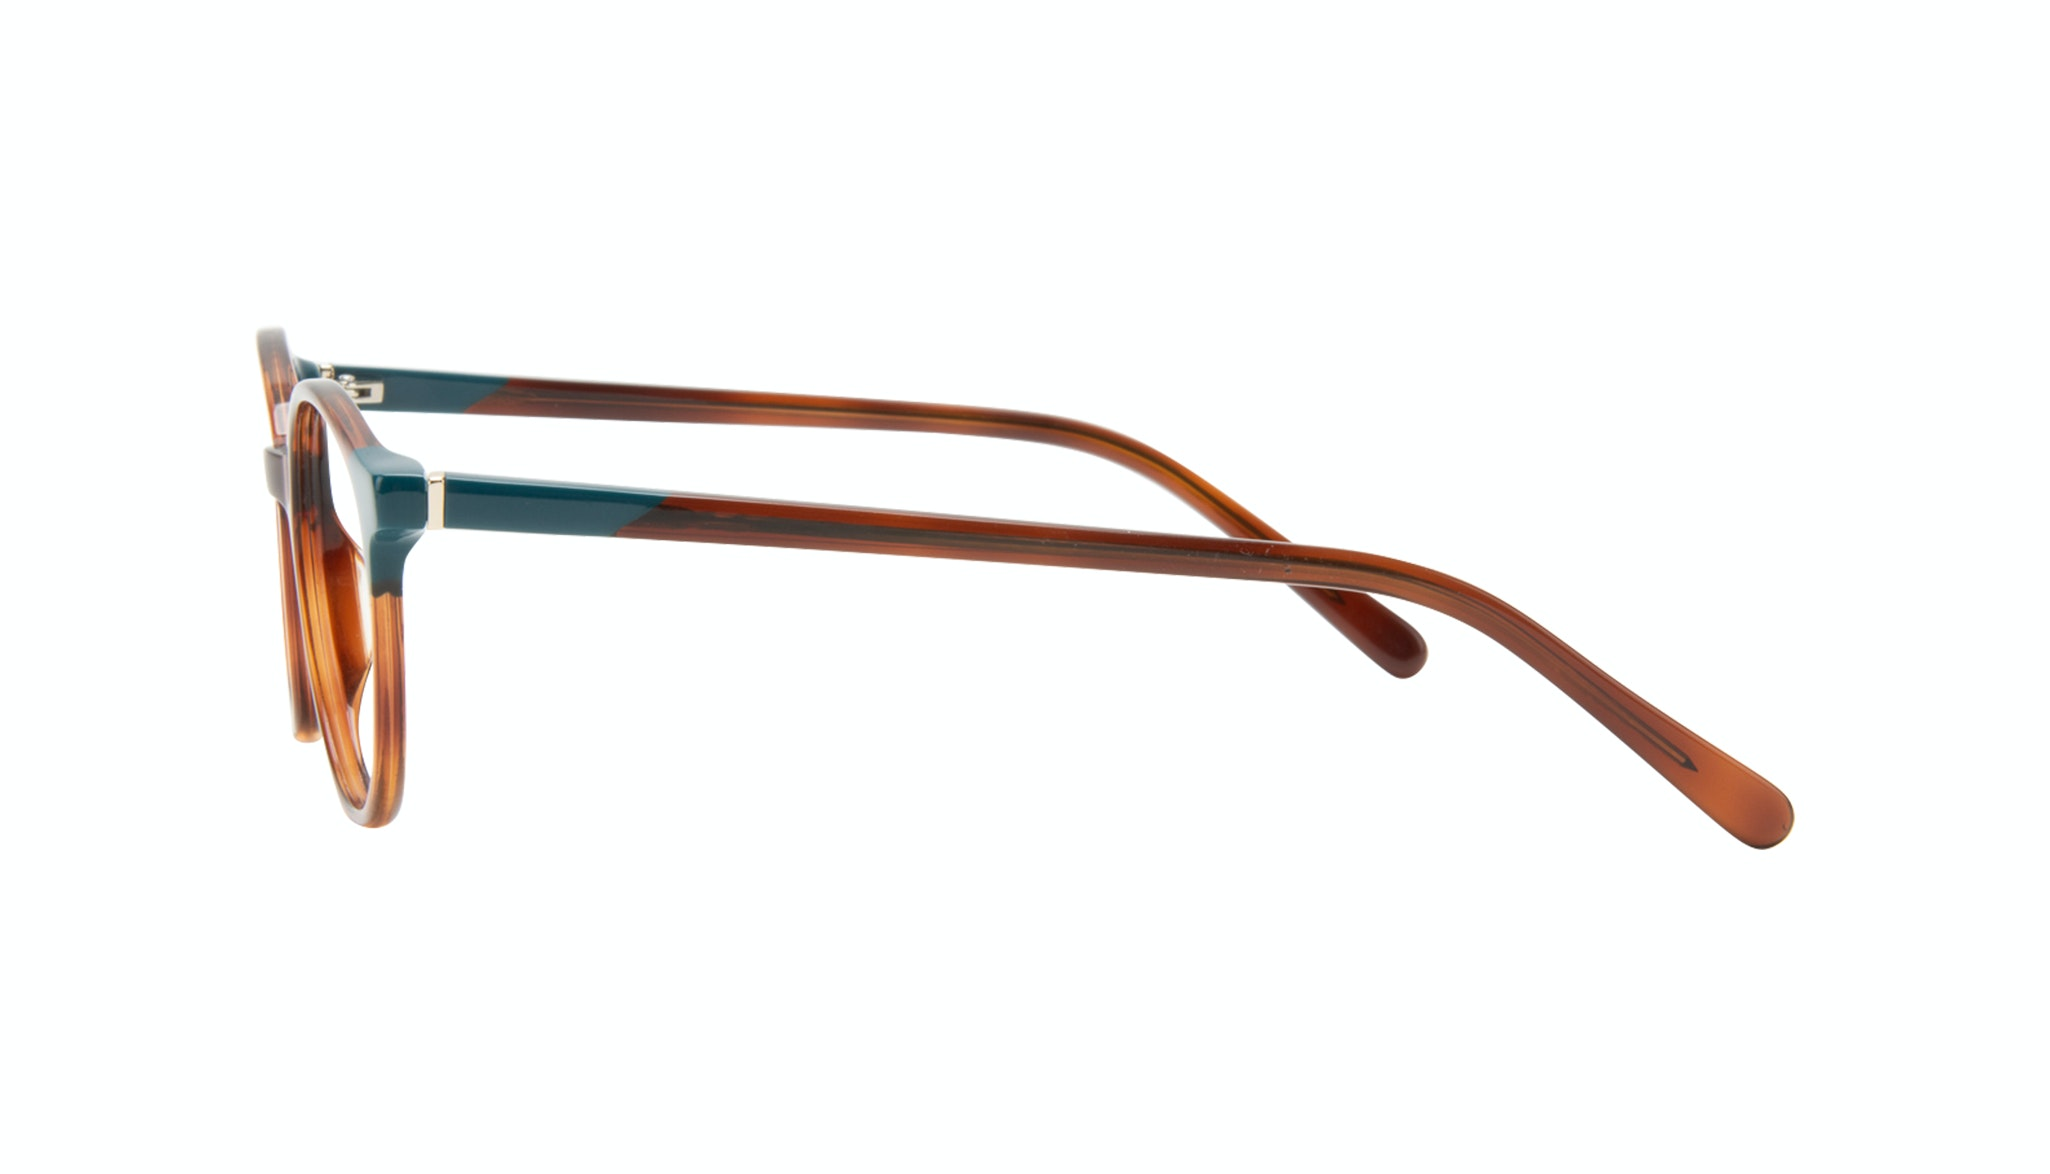 Affordable Fashion Glasses Round Eyeglasses Women Vivid Teal Tort Side